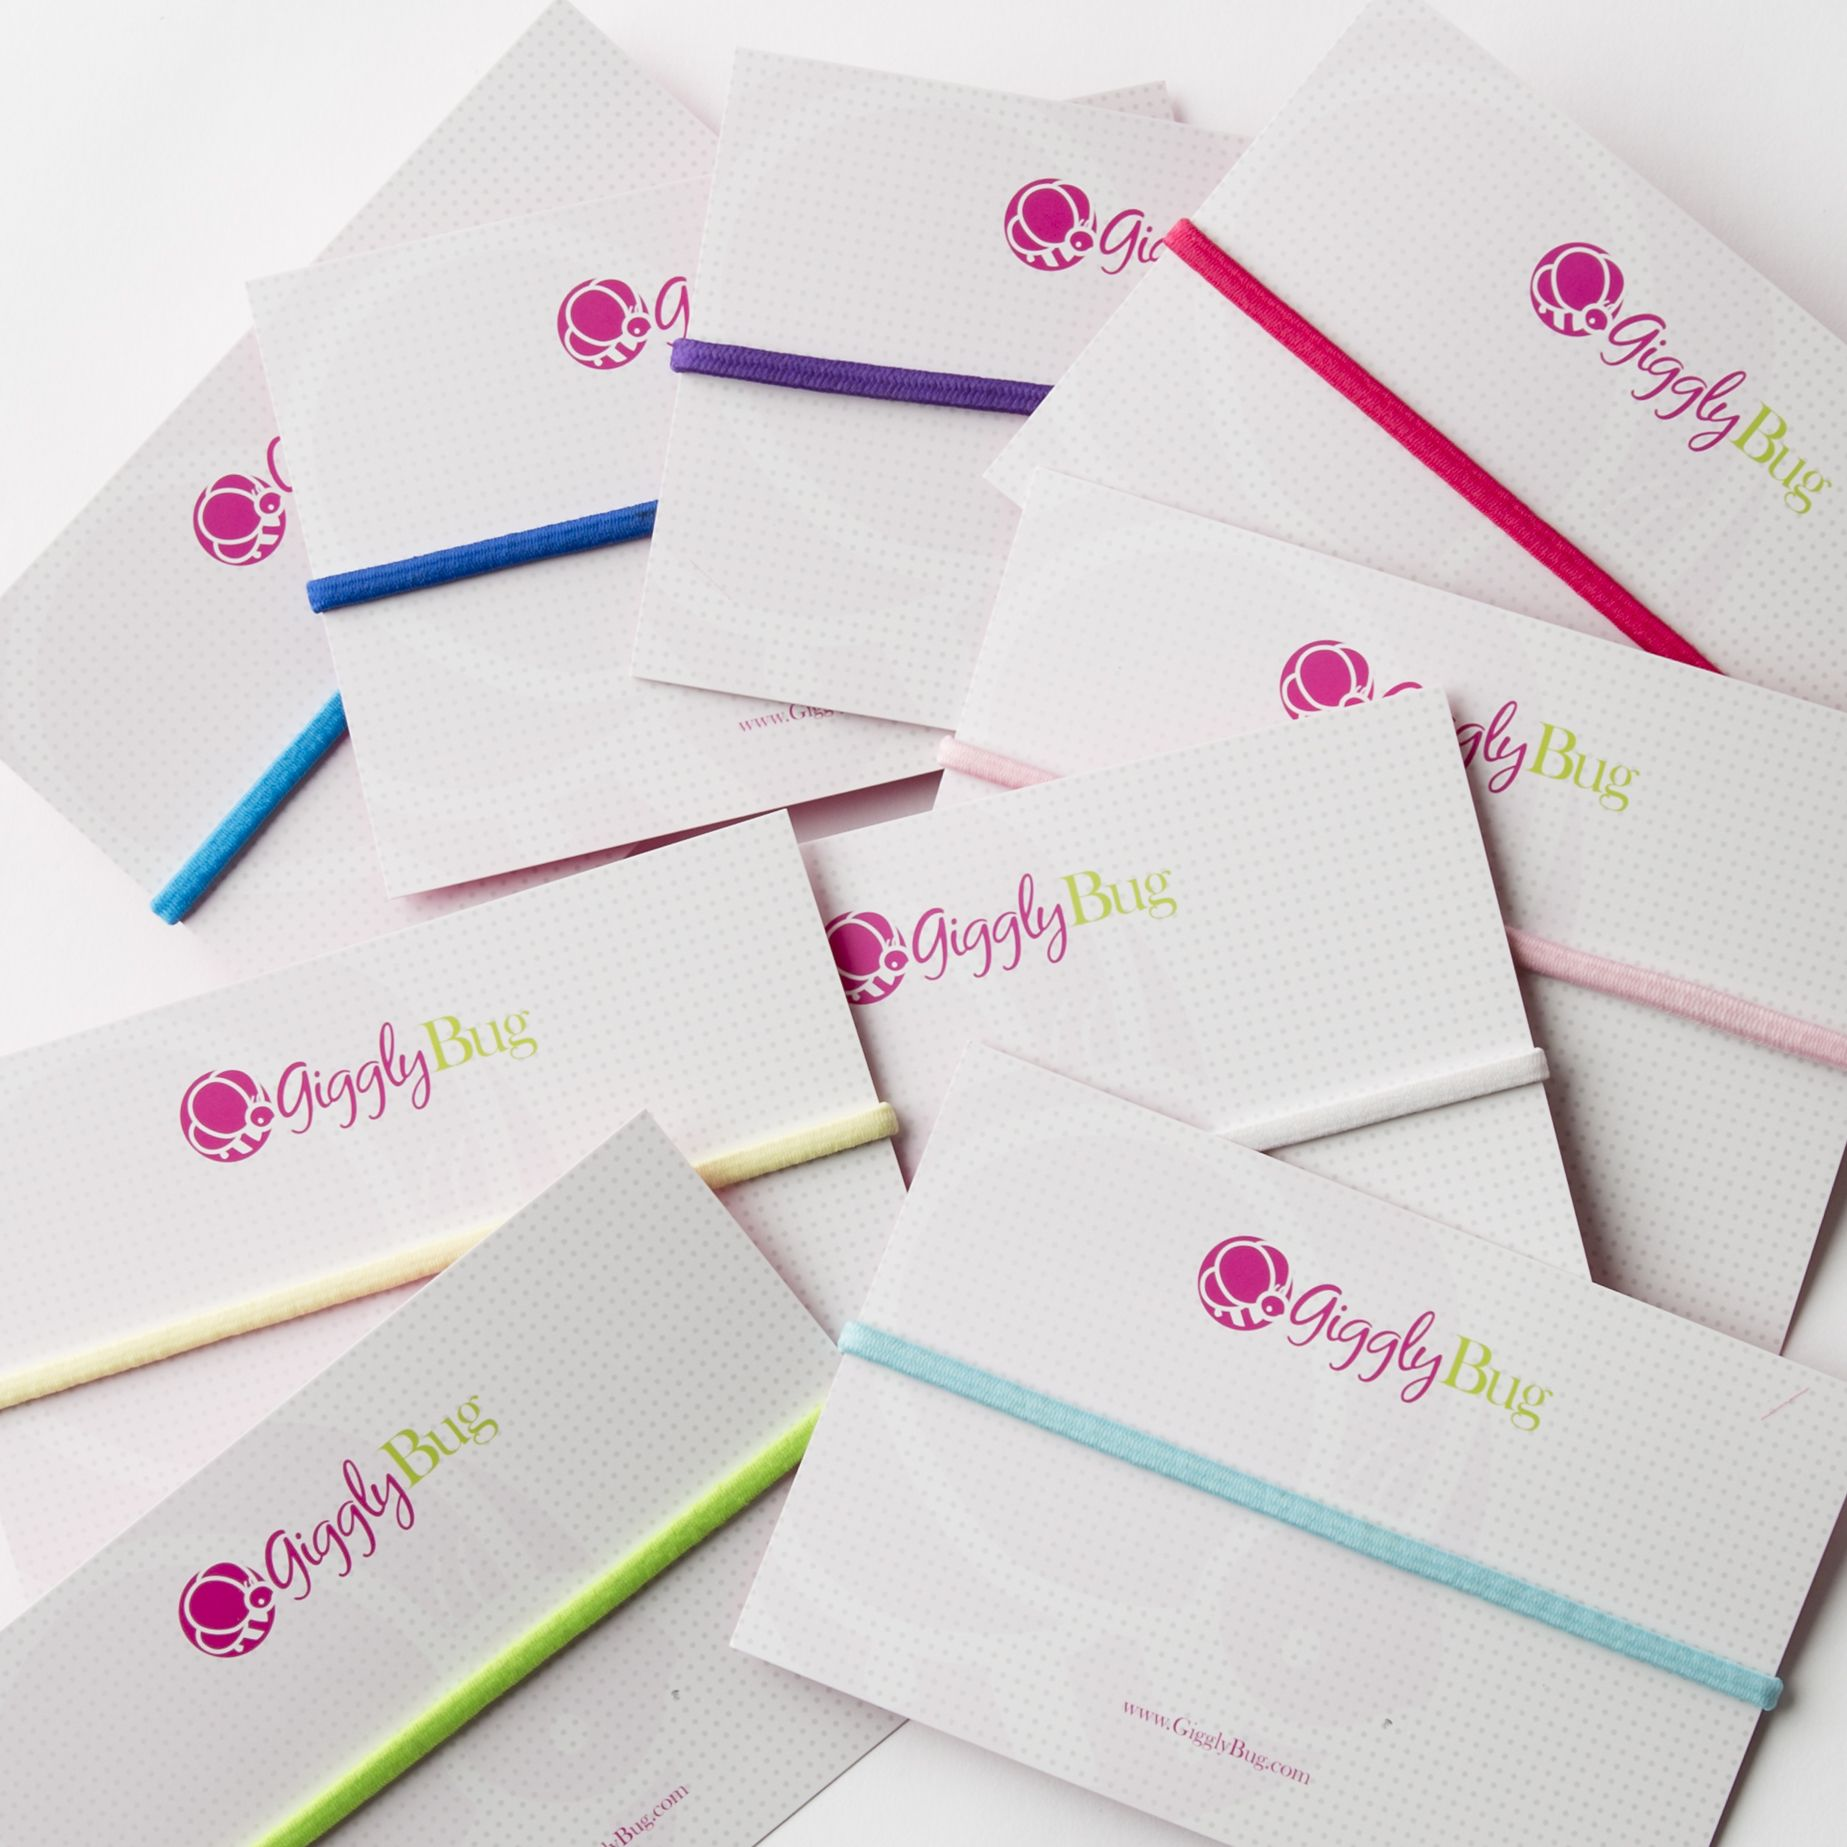 Single Thin HeadbandLooking to add color to your hairstyle, pick from Giggly Bug's variety of thin headbands Price: $2.00